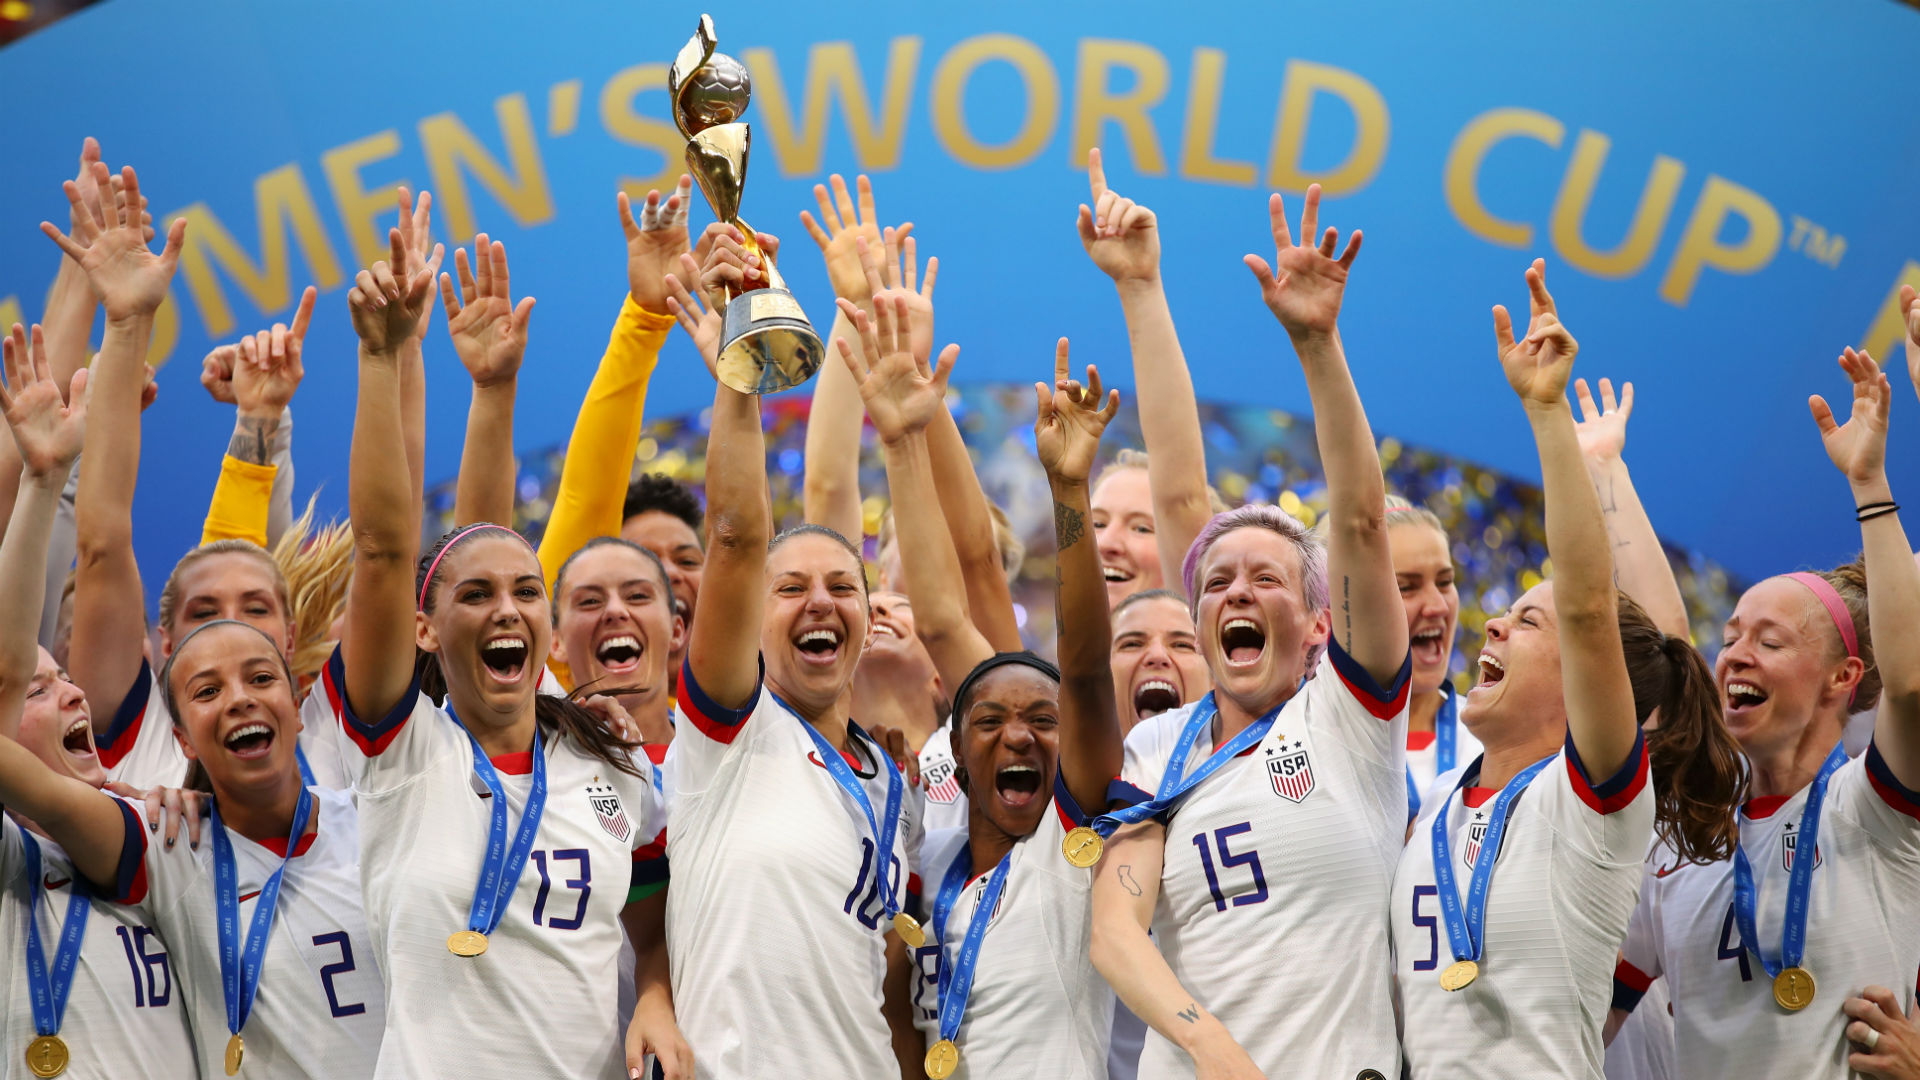 U.S. Soccer says it has paid women's national team more than men's team